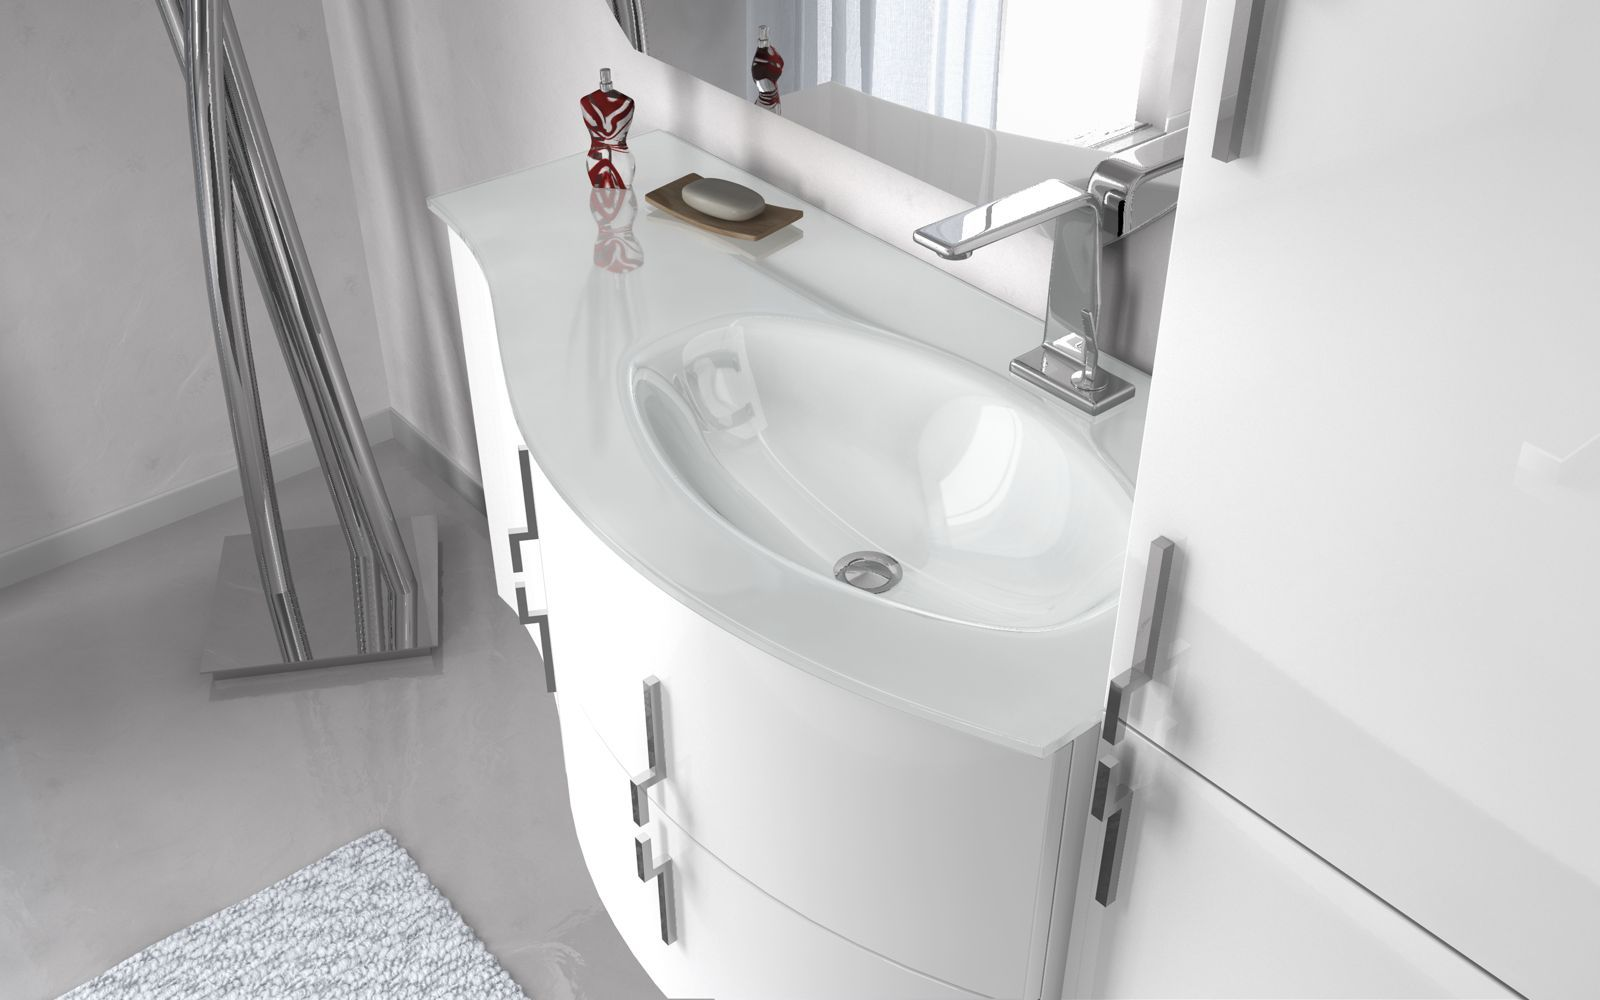 http://www.bagnoitalia.it/images/stories/virtuemart/product/mobile_bagno_sting_lavabo_cristallo.jpg